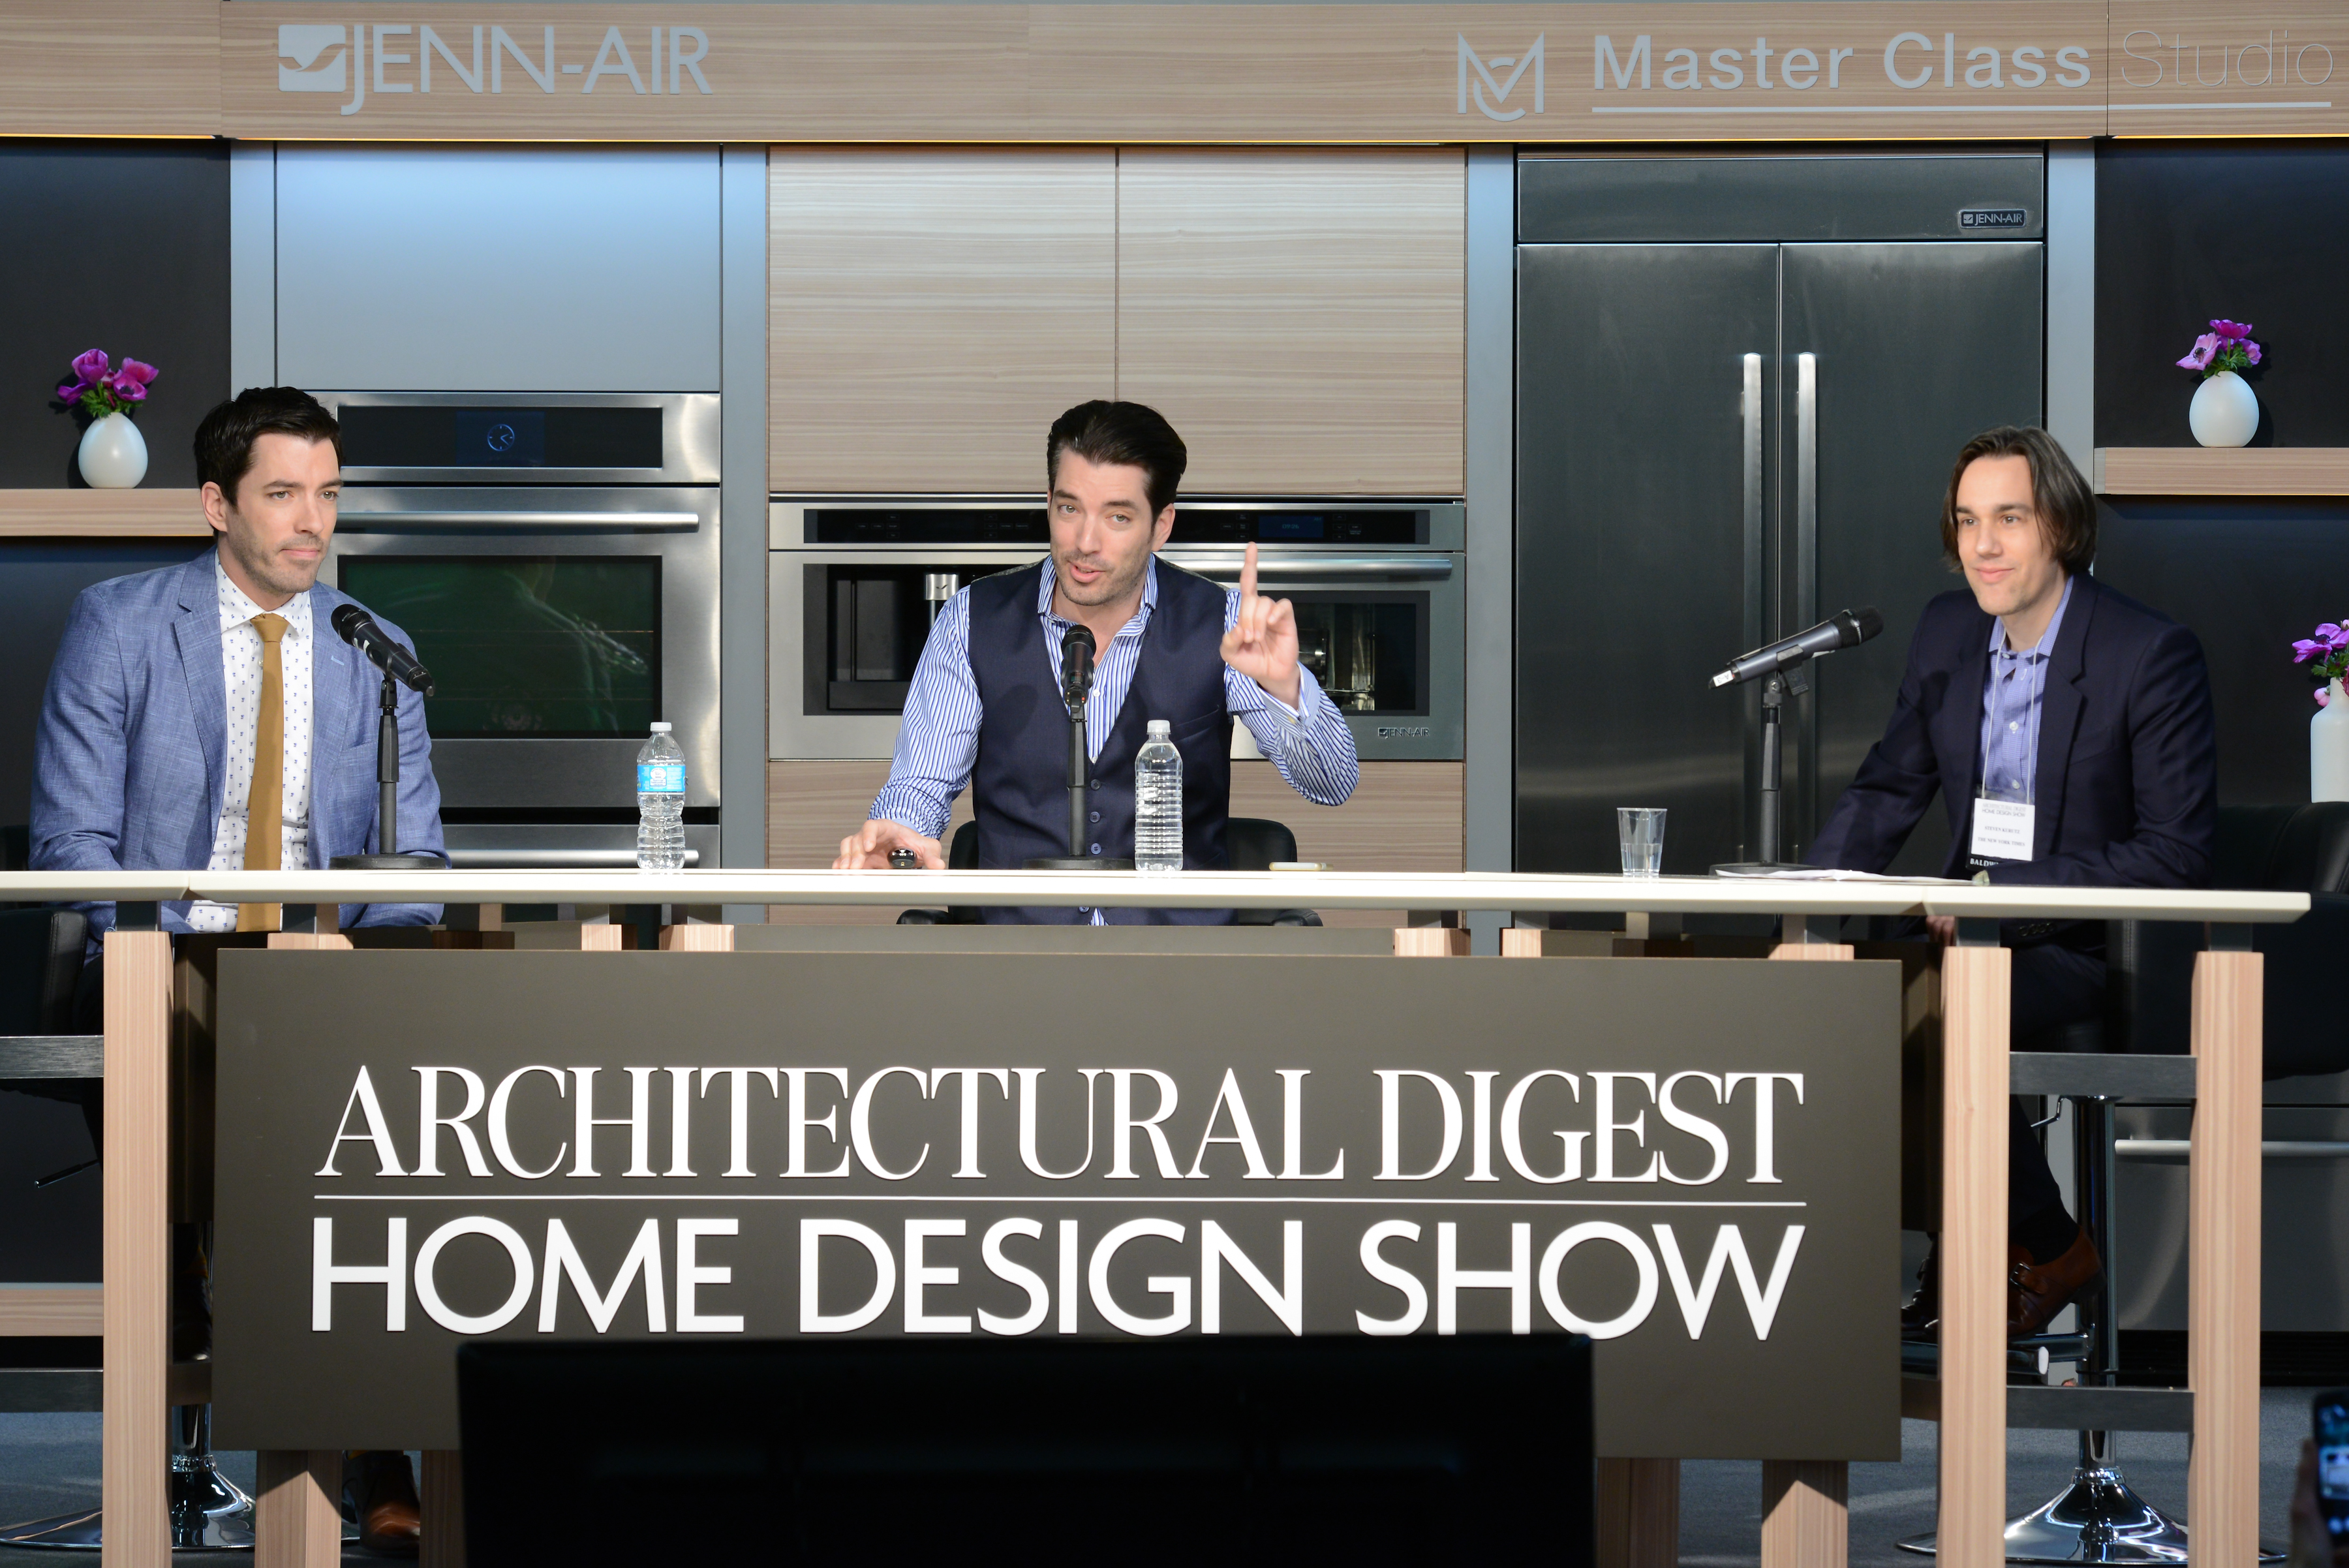 architectural digest home design show 2015 | ad360